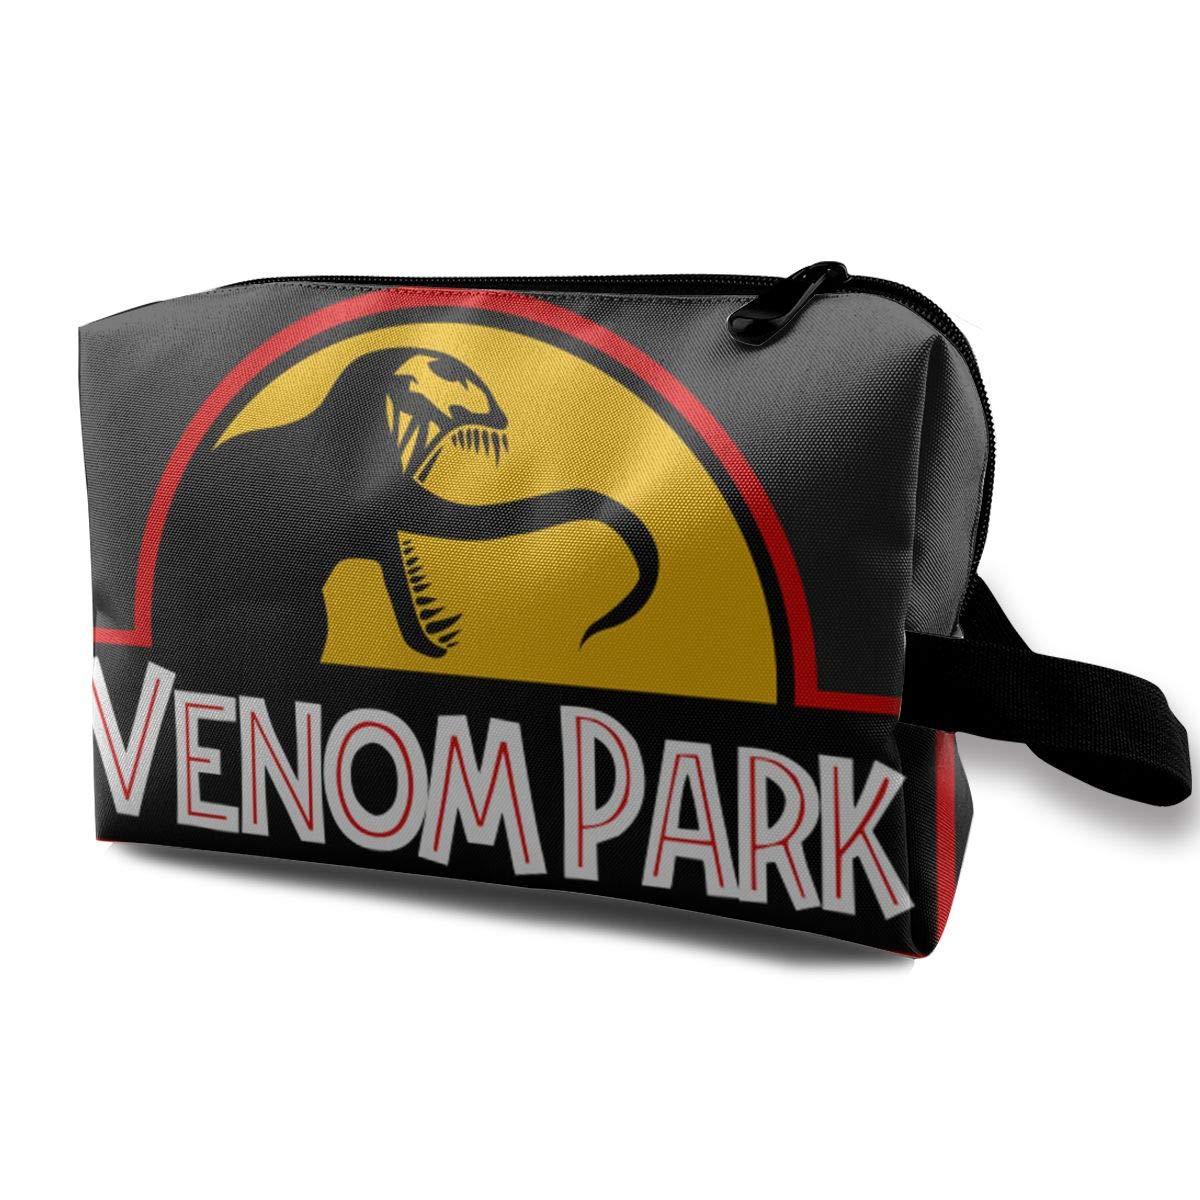 MIAOXIONG Venom Park トラベルストレージバッグ 荷物パッキングバッグ ジッパー付き 旅行用キューブセット 旅行用 B07K7NGR7T